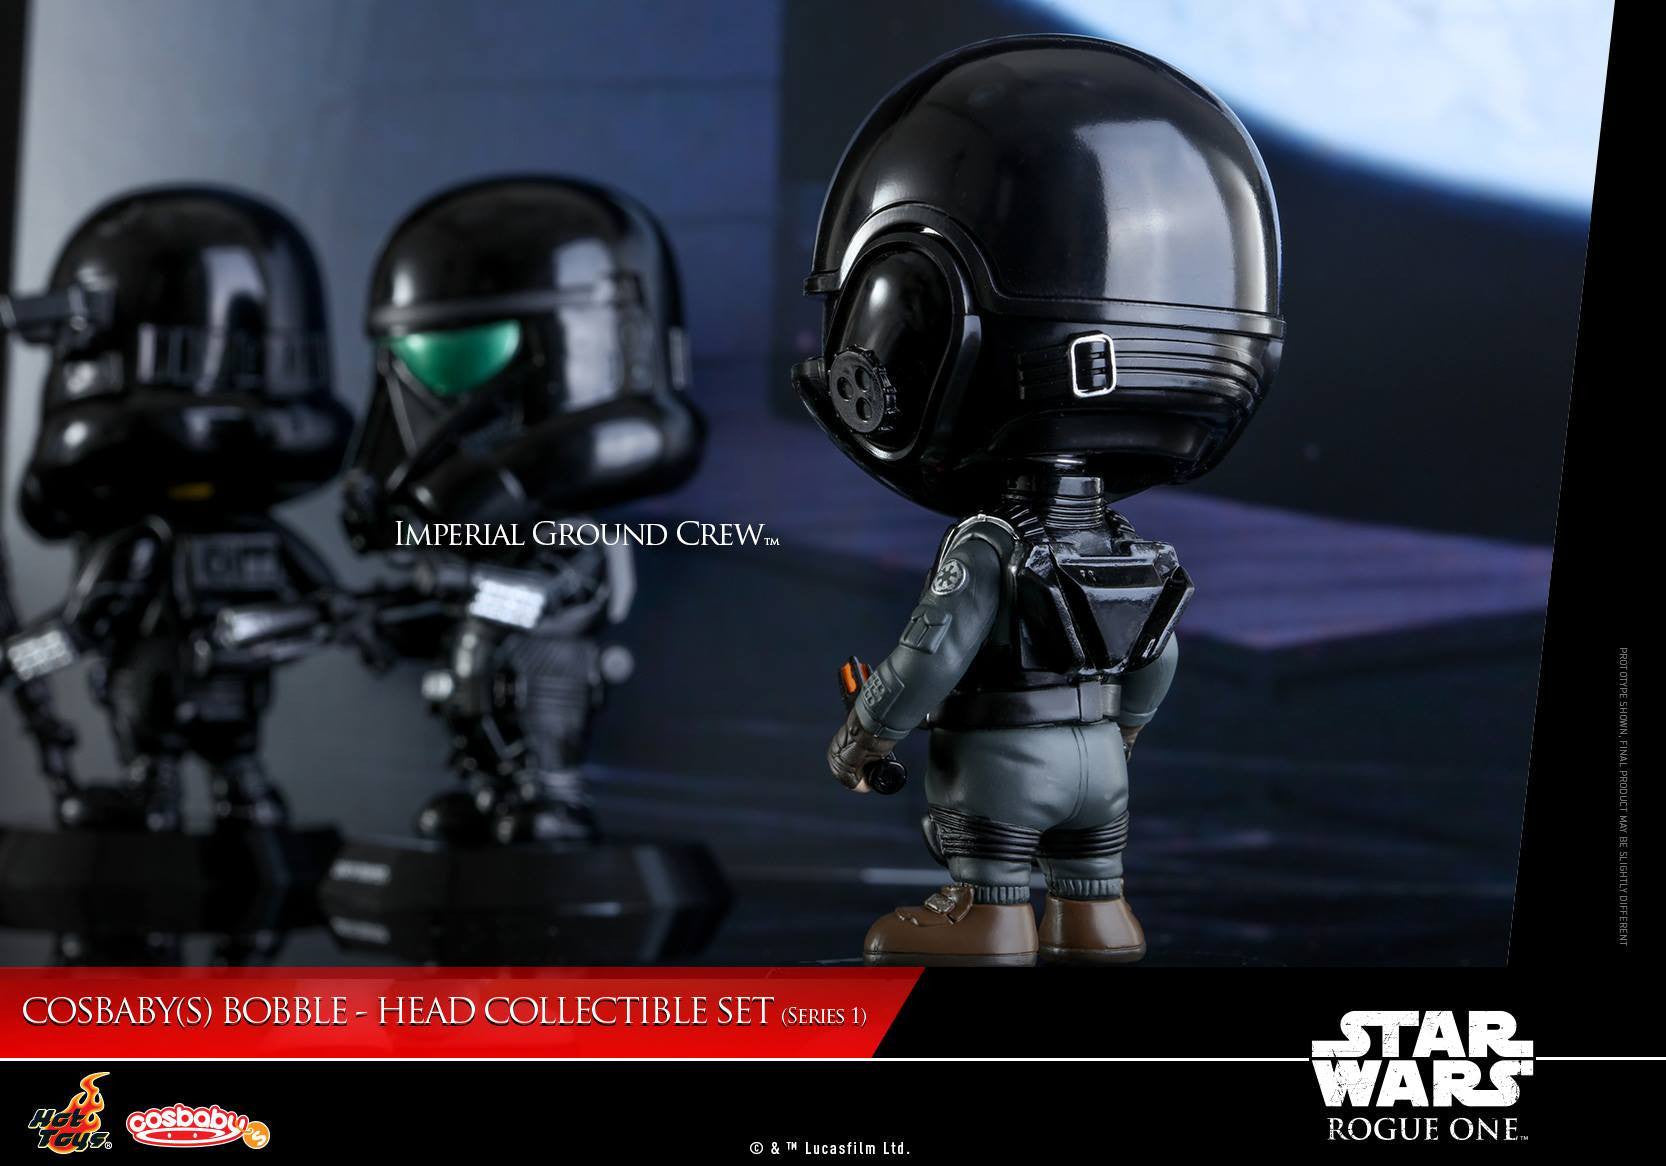 (IN STOCK) Hot Toys - COSB335 - Rogue One: A Star Wars Story - Cosbaby Bobble-Head (Series 1) Set of 6 - Marvelous Toys - 17